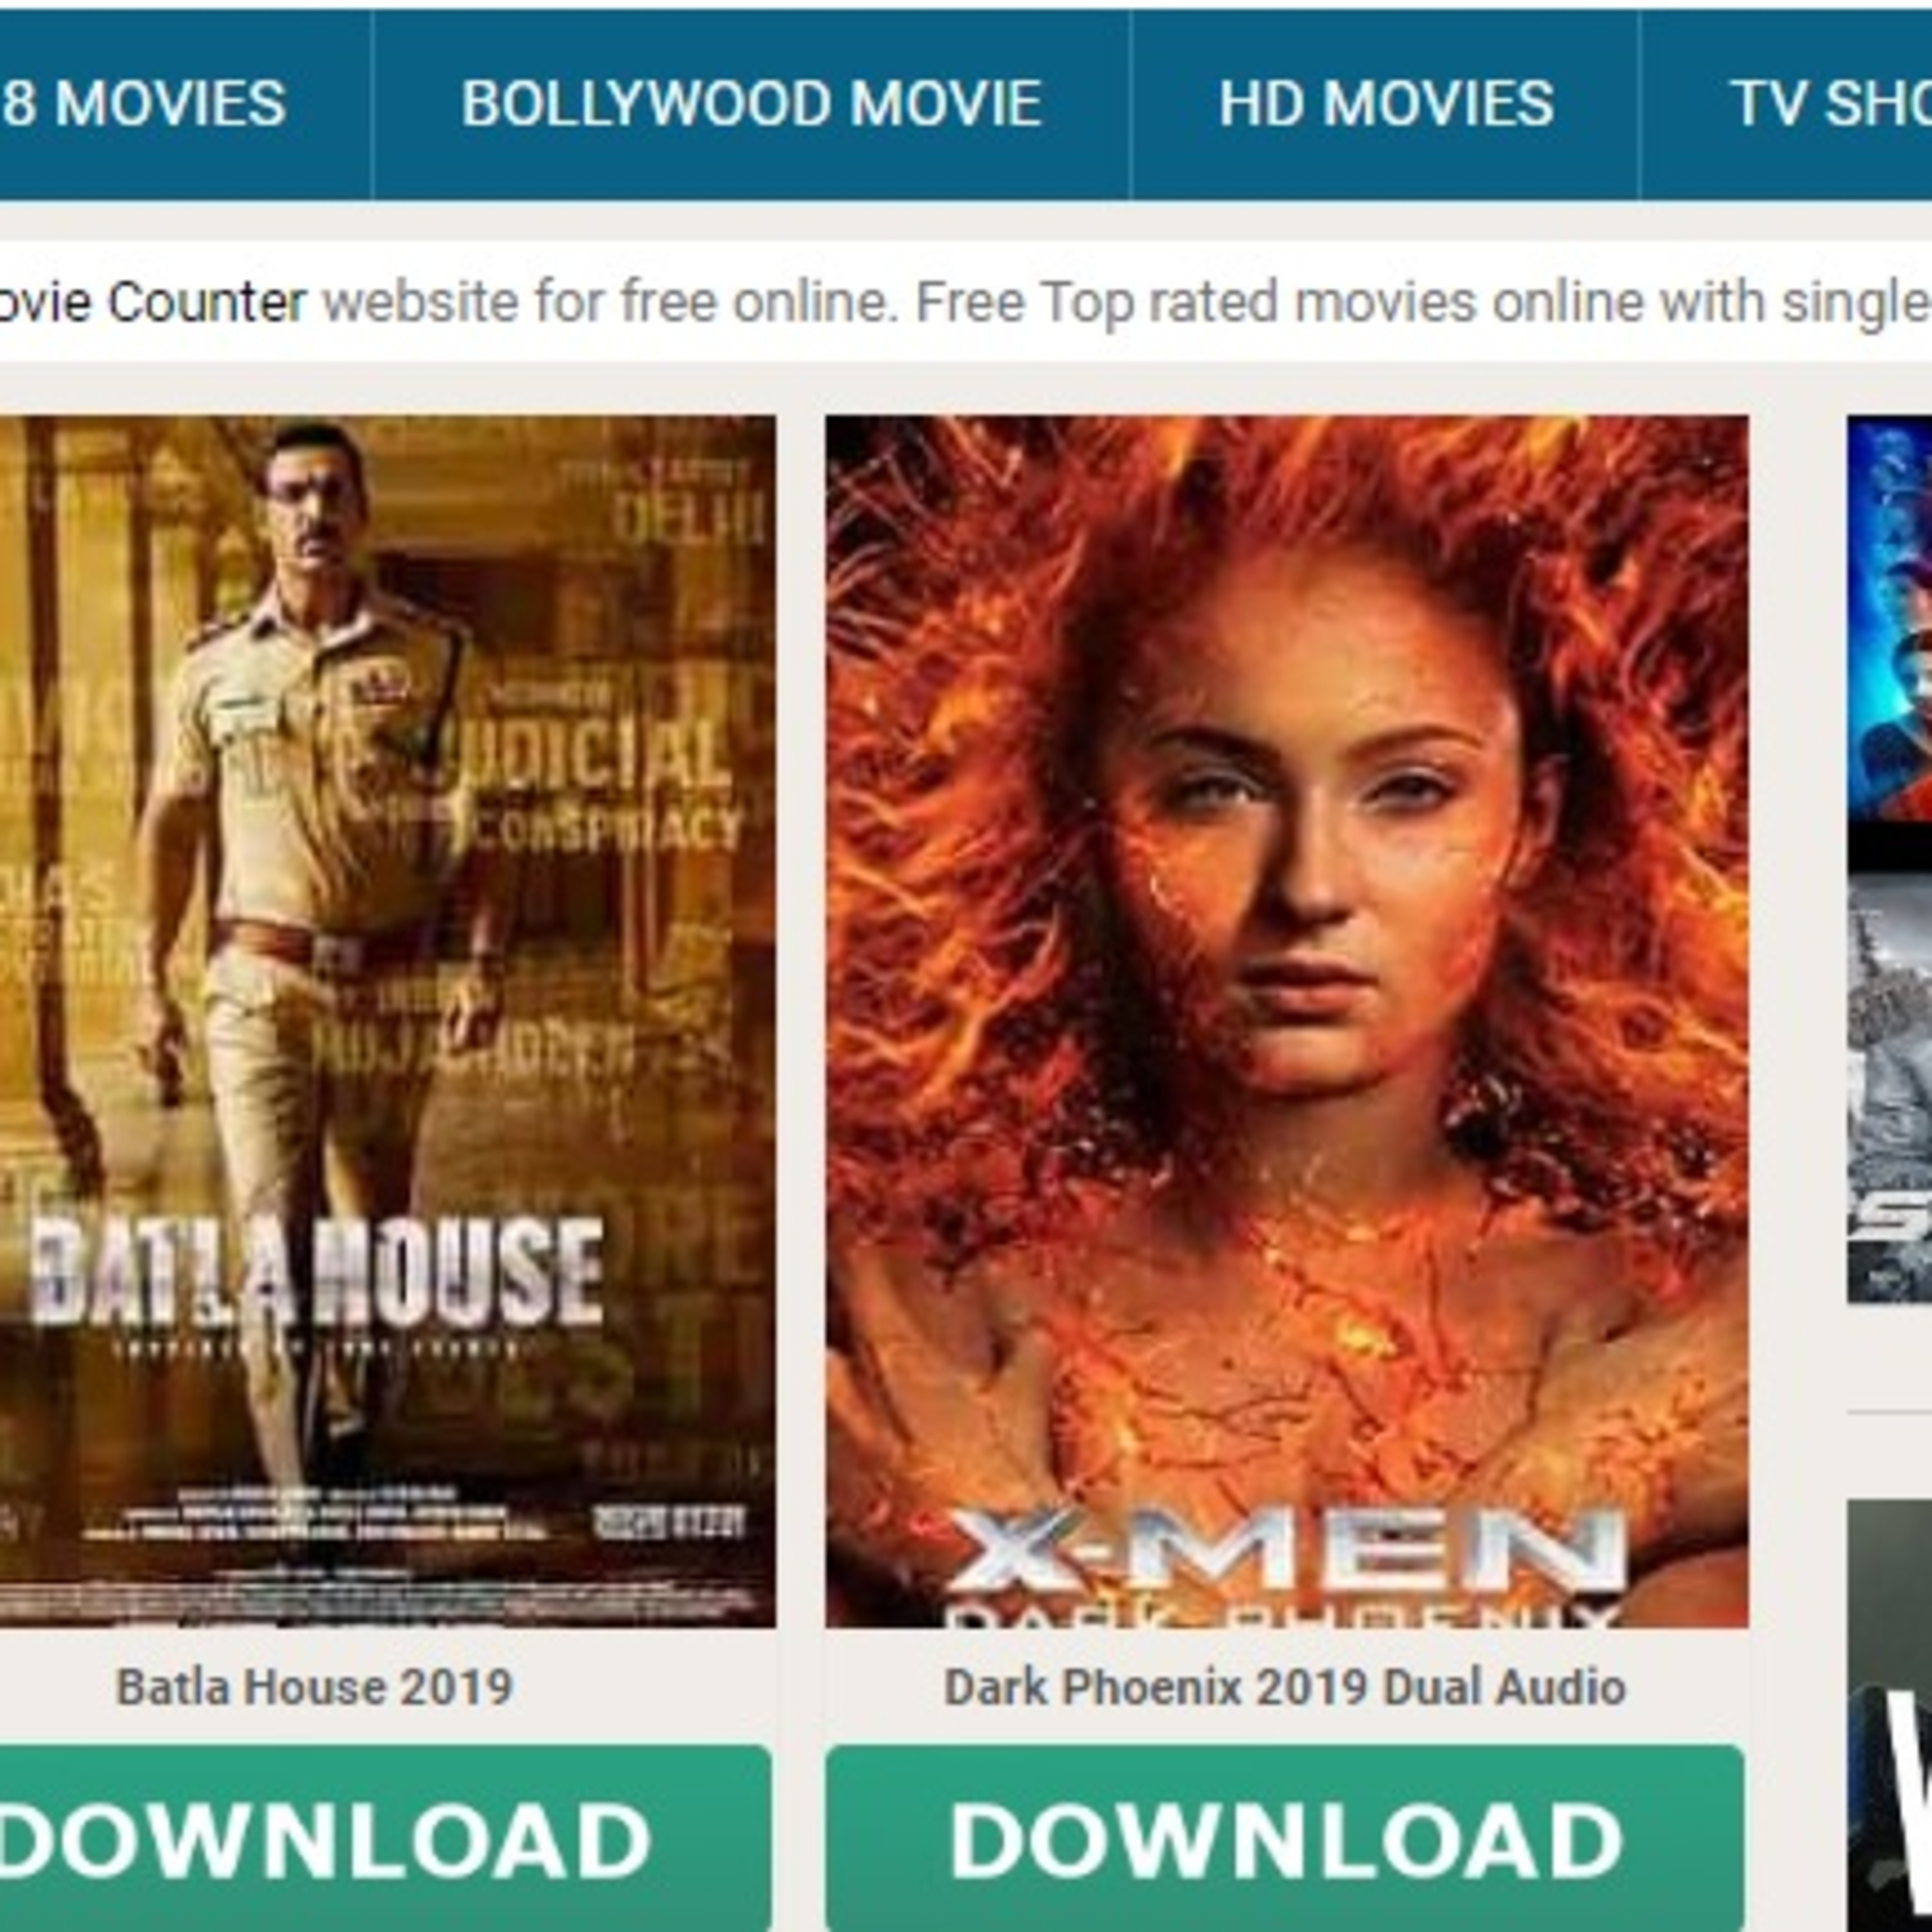 Download Movie Counter Free Online Movies